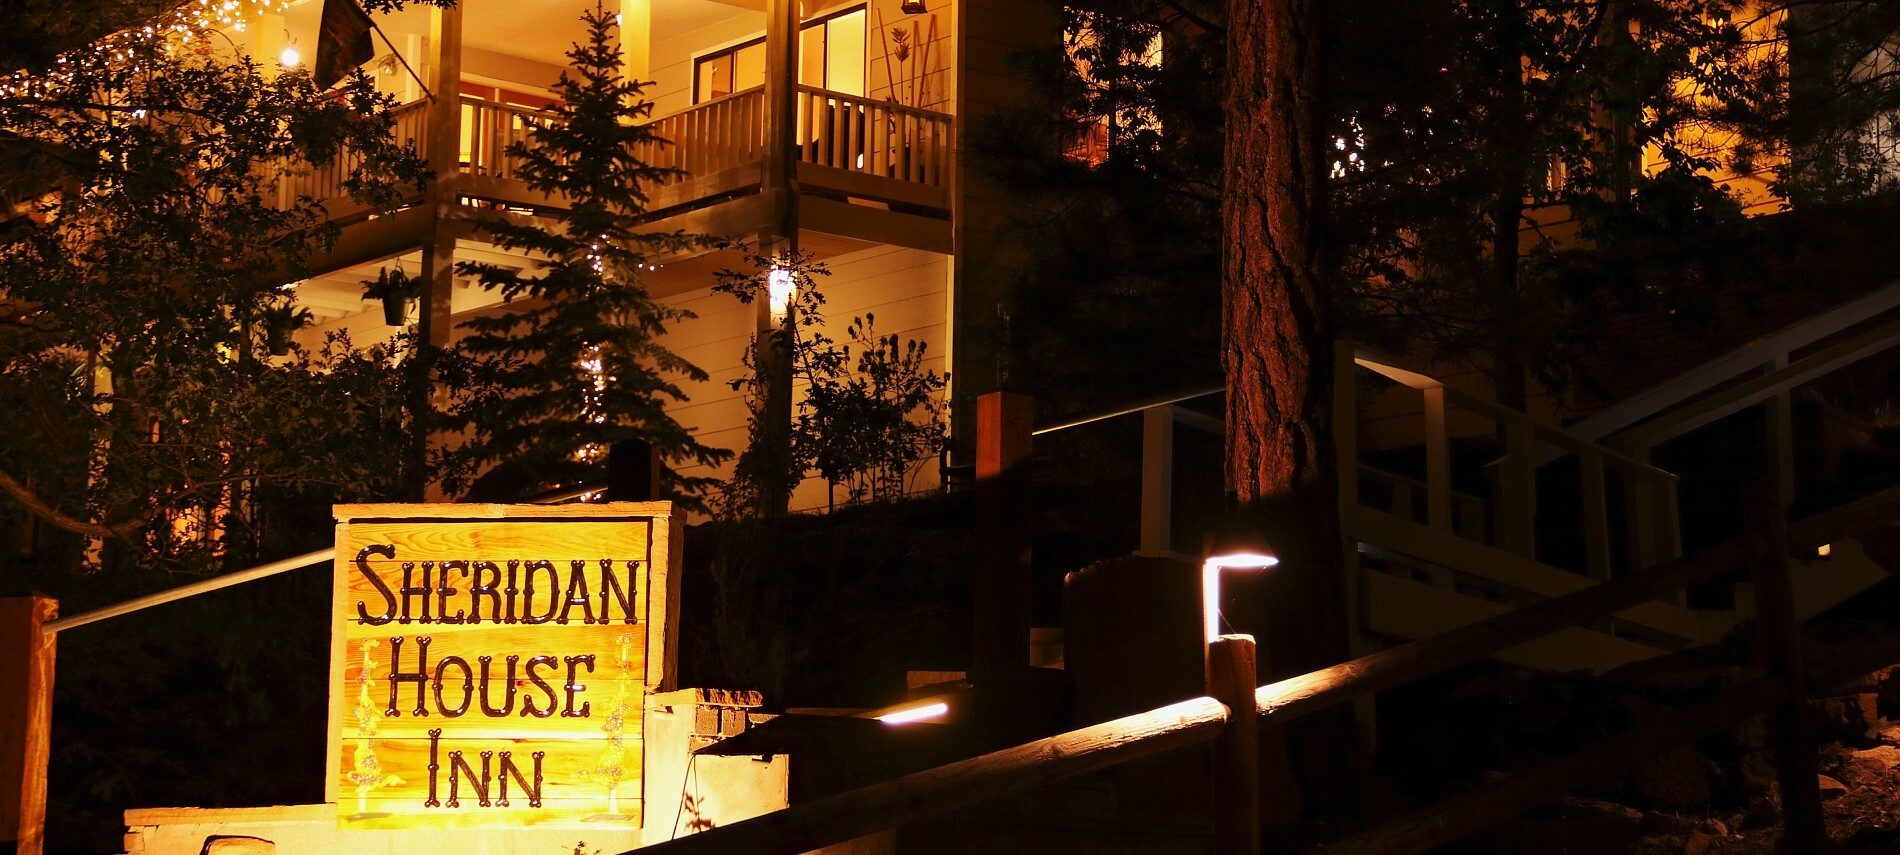 Nighttime outside of a two story home in the woods with glowing porch lights and inn sign lit up